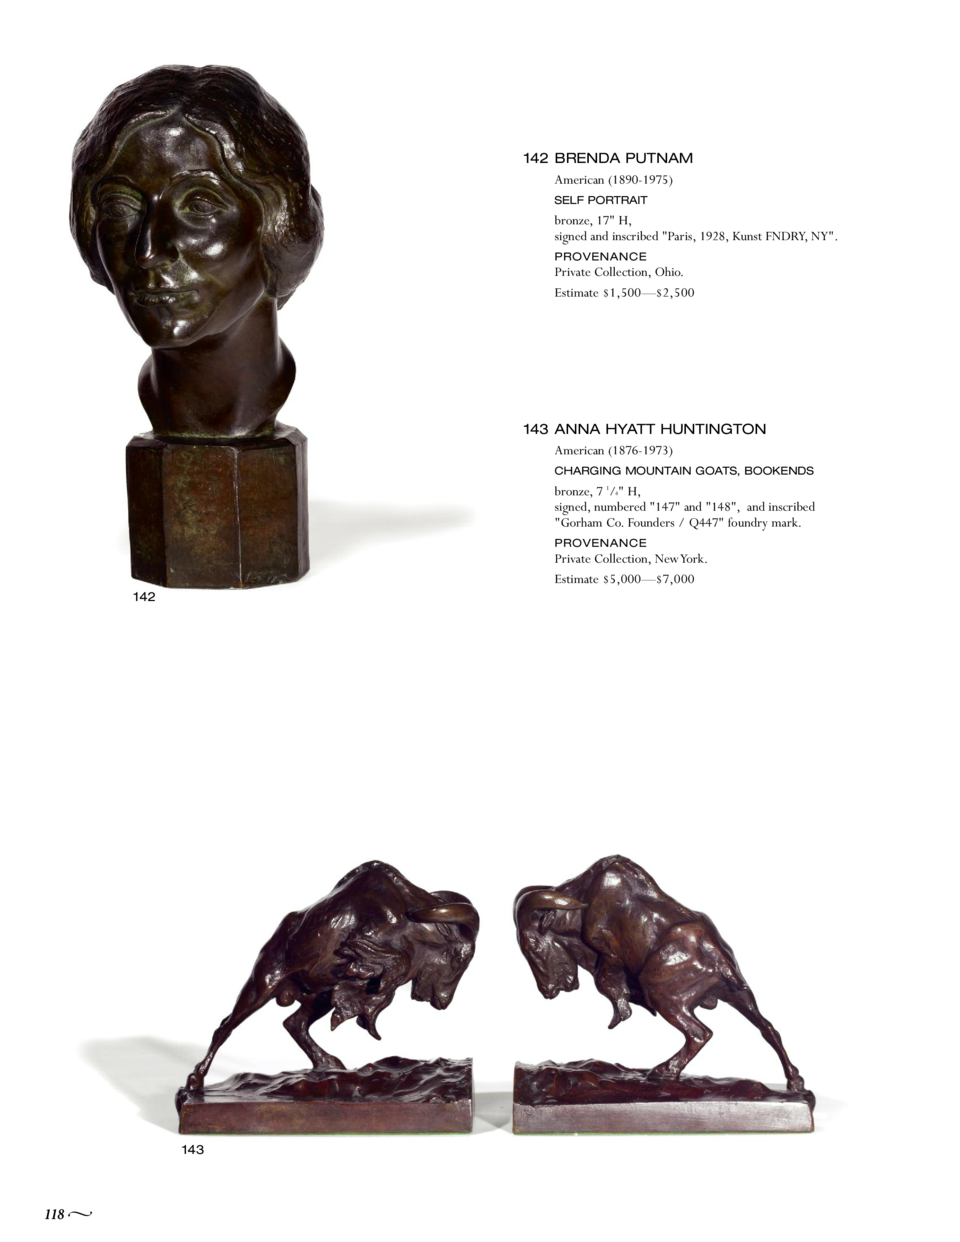 142 BRENDA PUTNAM American  1890-1975  SELF PORTRAIT  bronze, 17  H, signed and inscribed  Paris, 1928, Kunst FNDRY, NY . ...